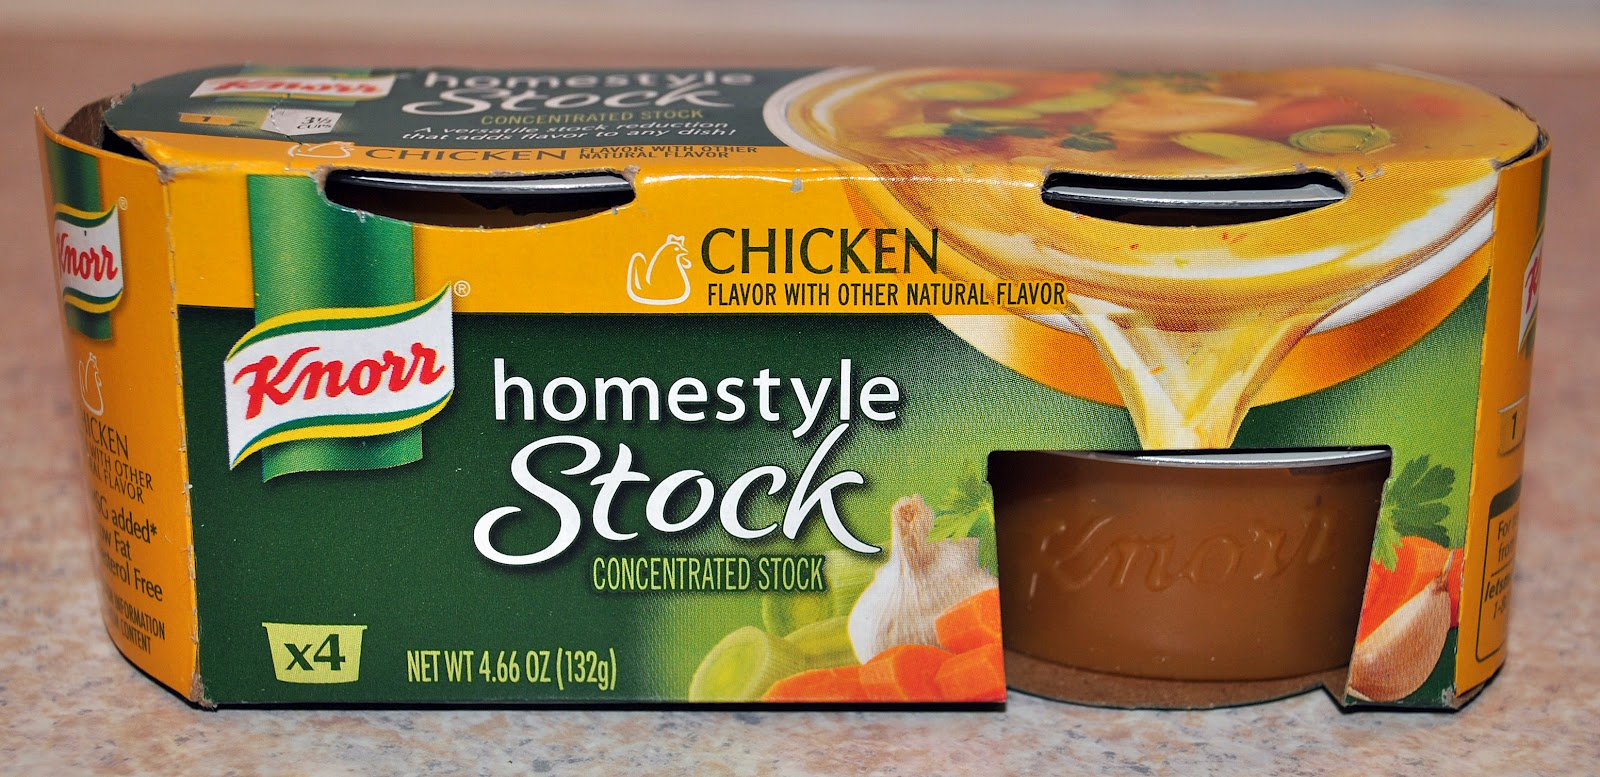 Knorr® Homestyle Stock Chicken i Also Received a Booklet Full